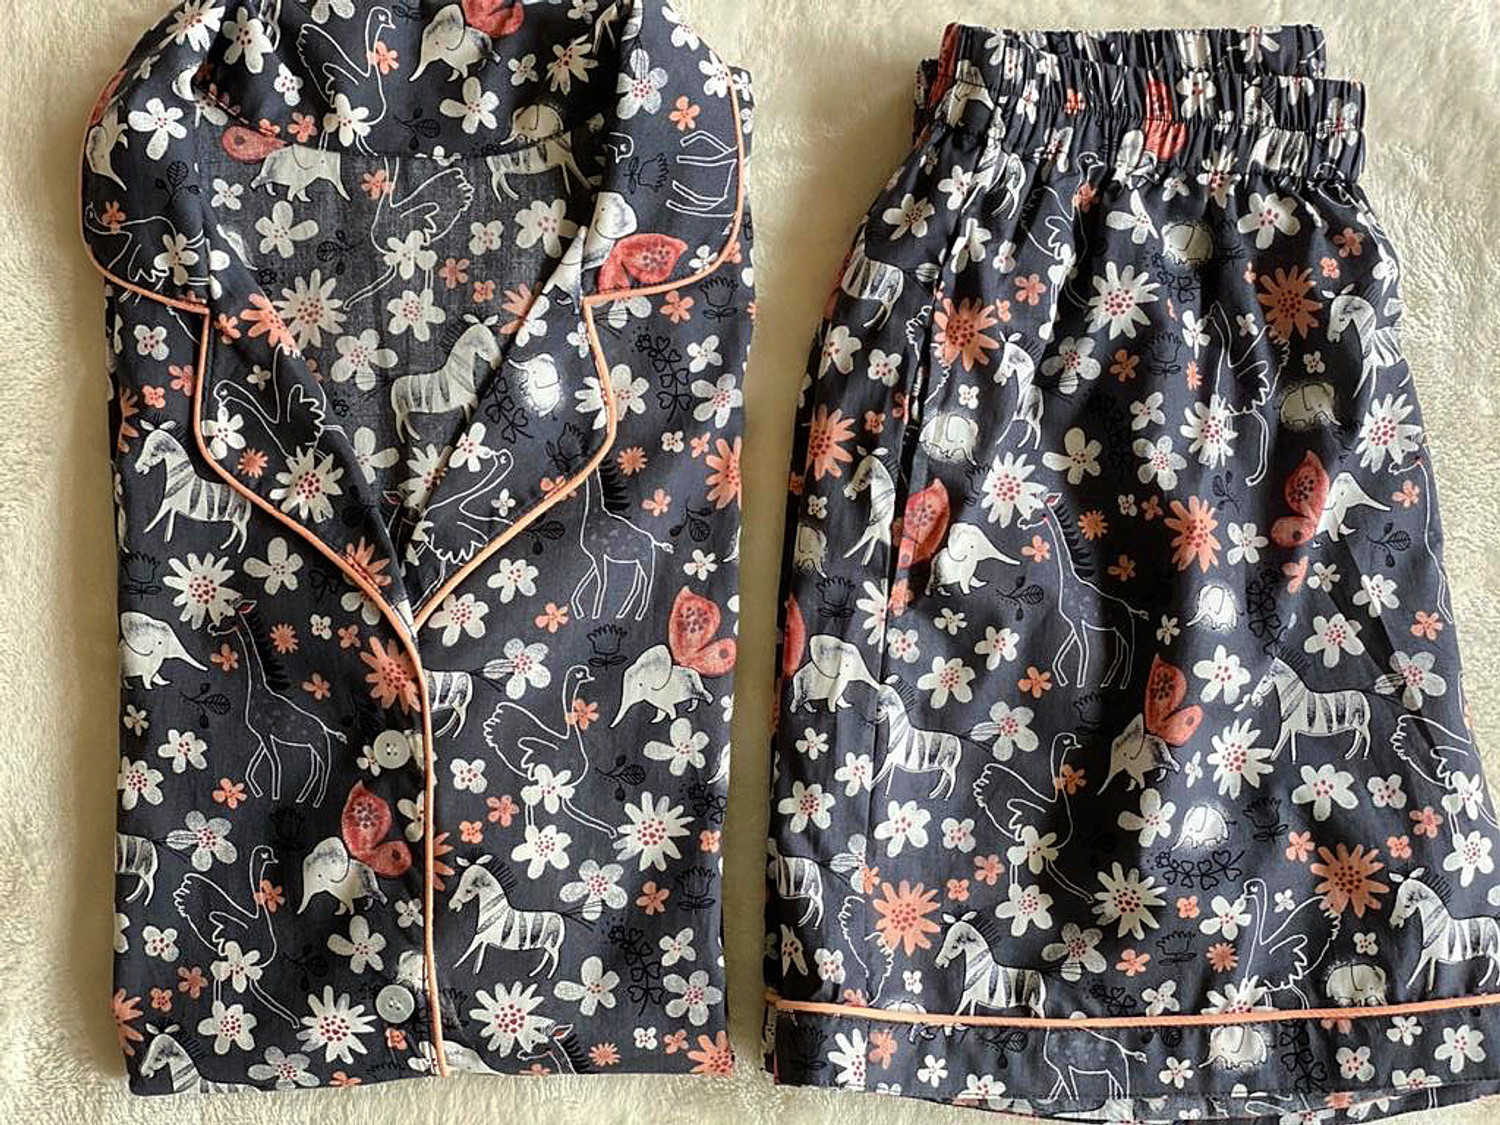 Wildflowers Rayon Cotton Nightsuit with Shorts